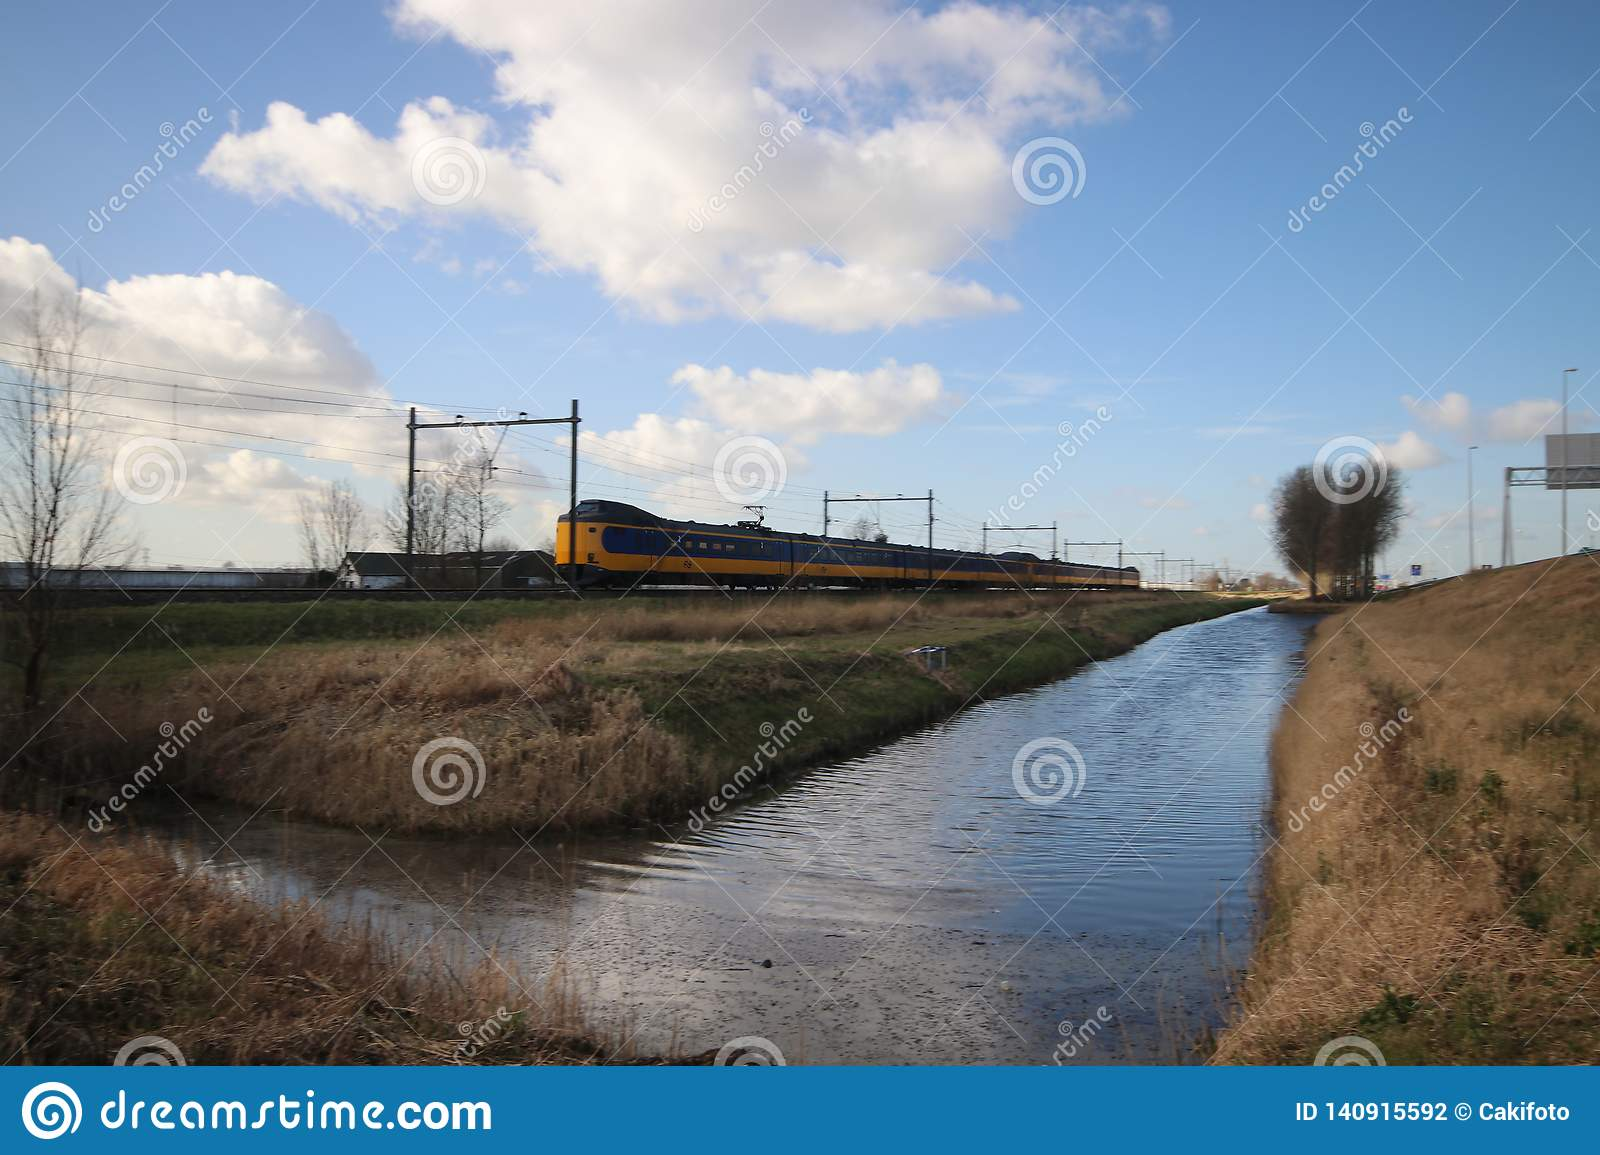 Wide angle overview of a koploper ICM intercity train on the track fron the hague heading to Gouda.